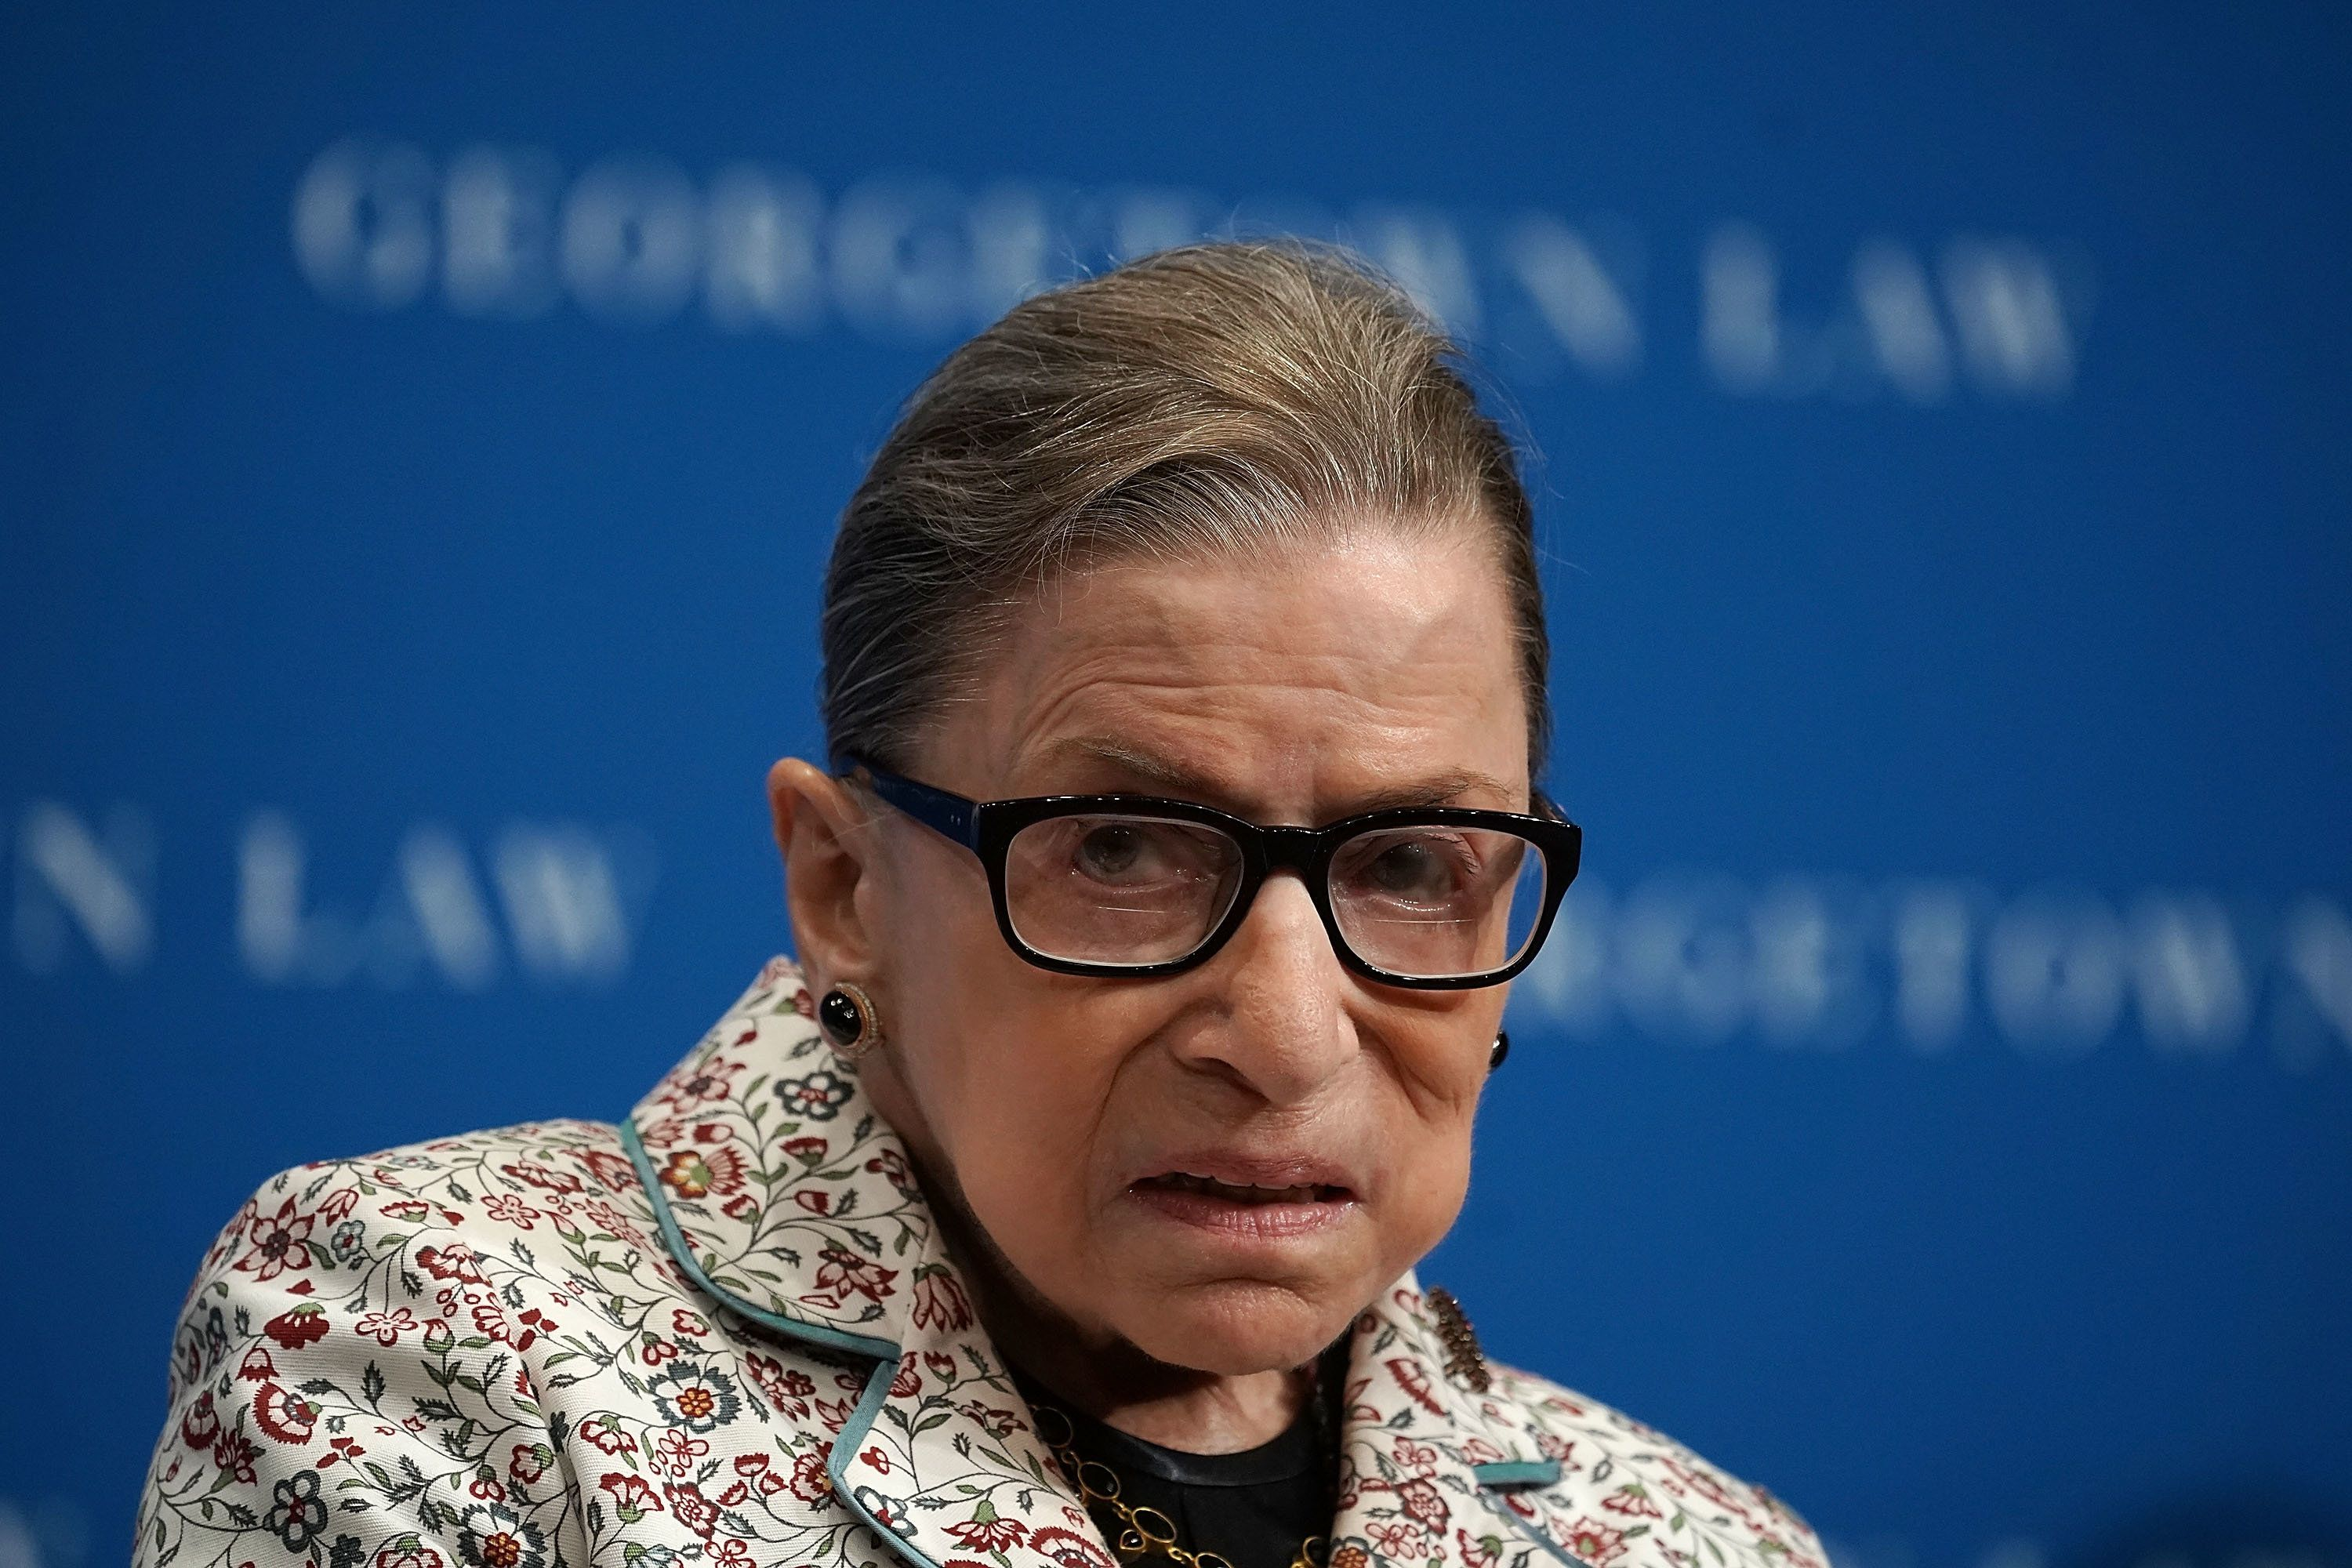 Supreme Court Justice Ginsburg discharged from hospital after cancer surgery